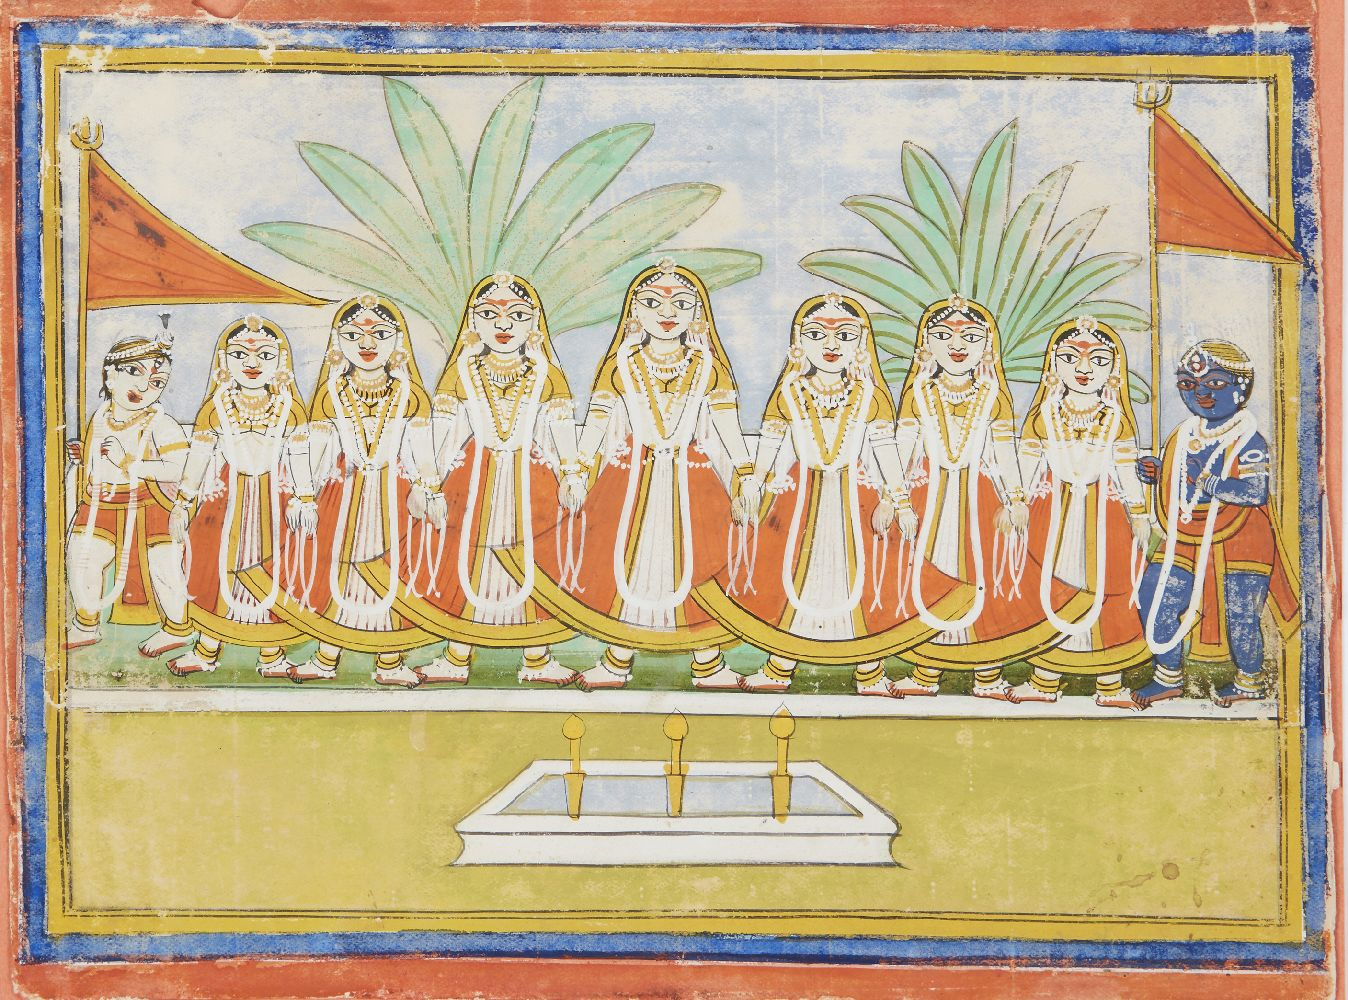 A Jain depiction of Krishna and the Gopis, Rajasthan, 19th century, opaque pigments on paper, 17.5 x